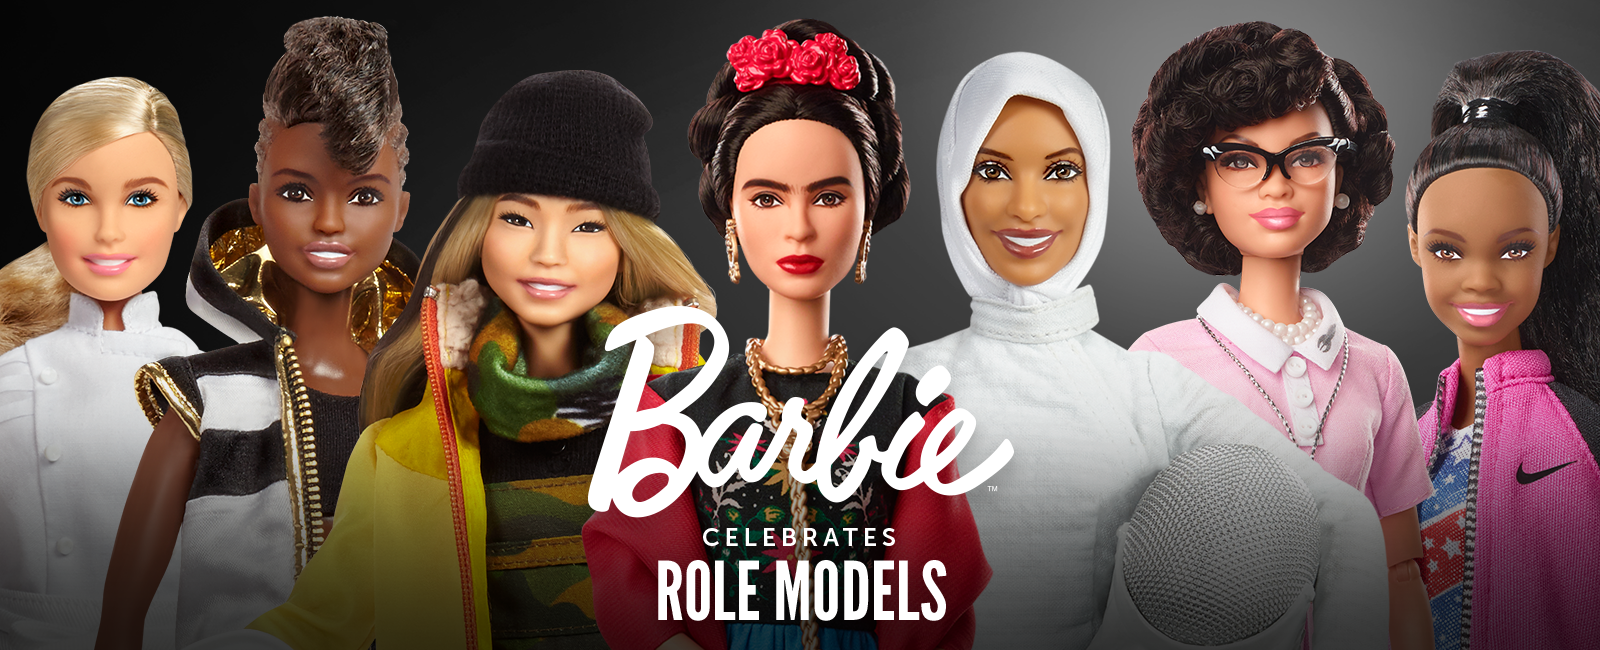 barbie, inspiring women